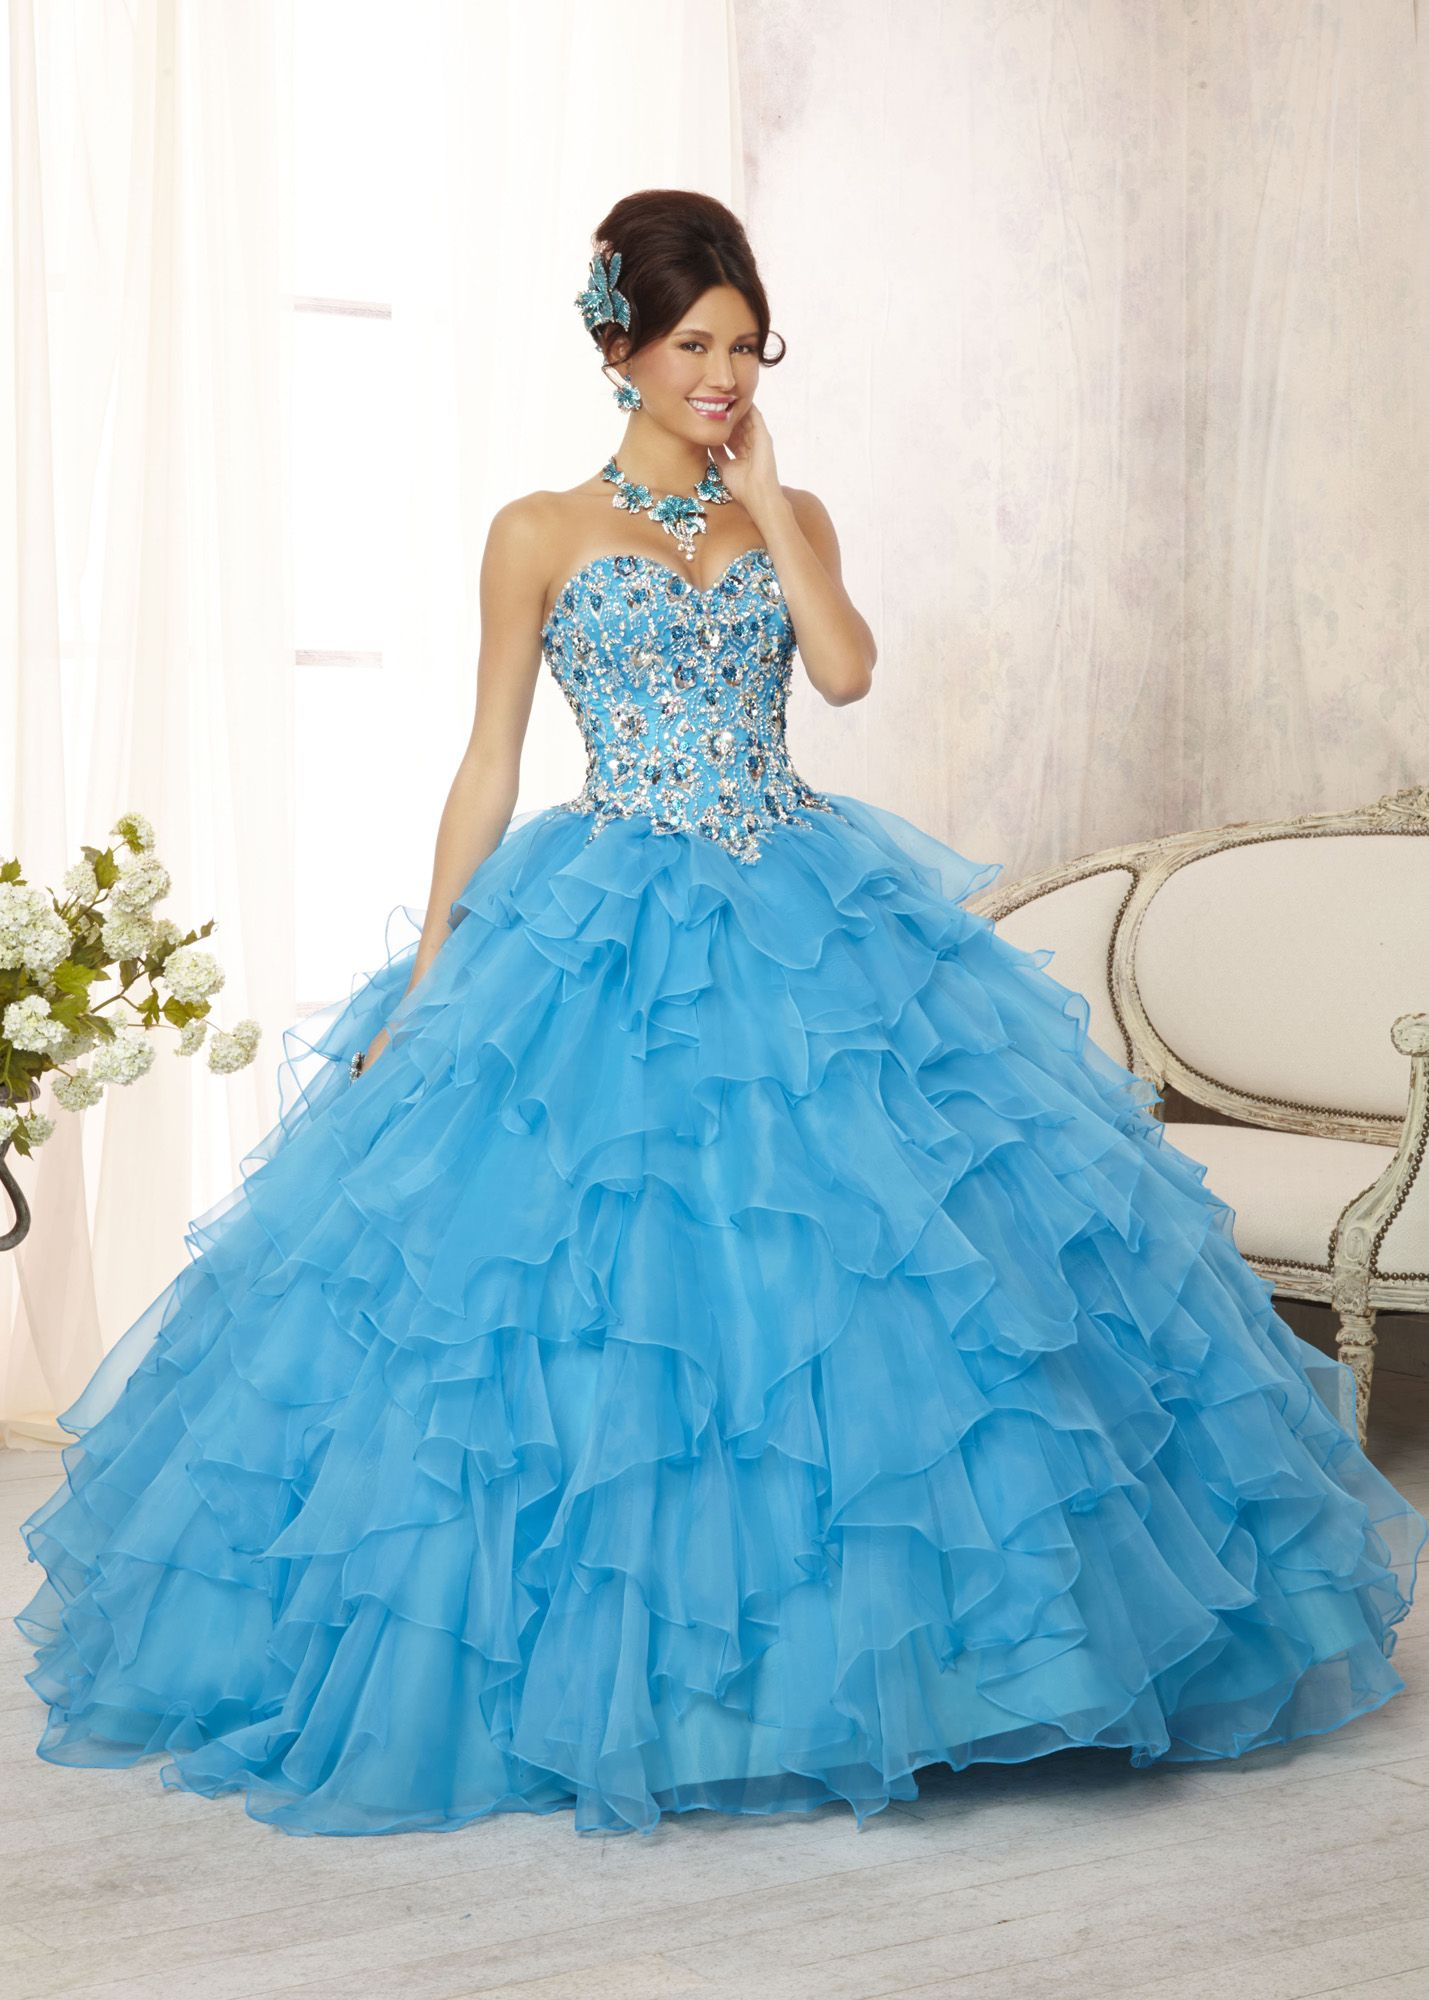 Perfect Prom Dresses Sutton Coldfield Ensign - All Wedding Dresses ...